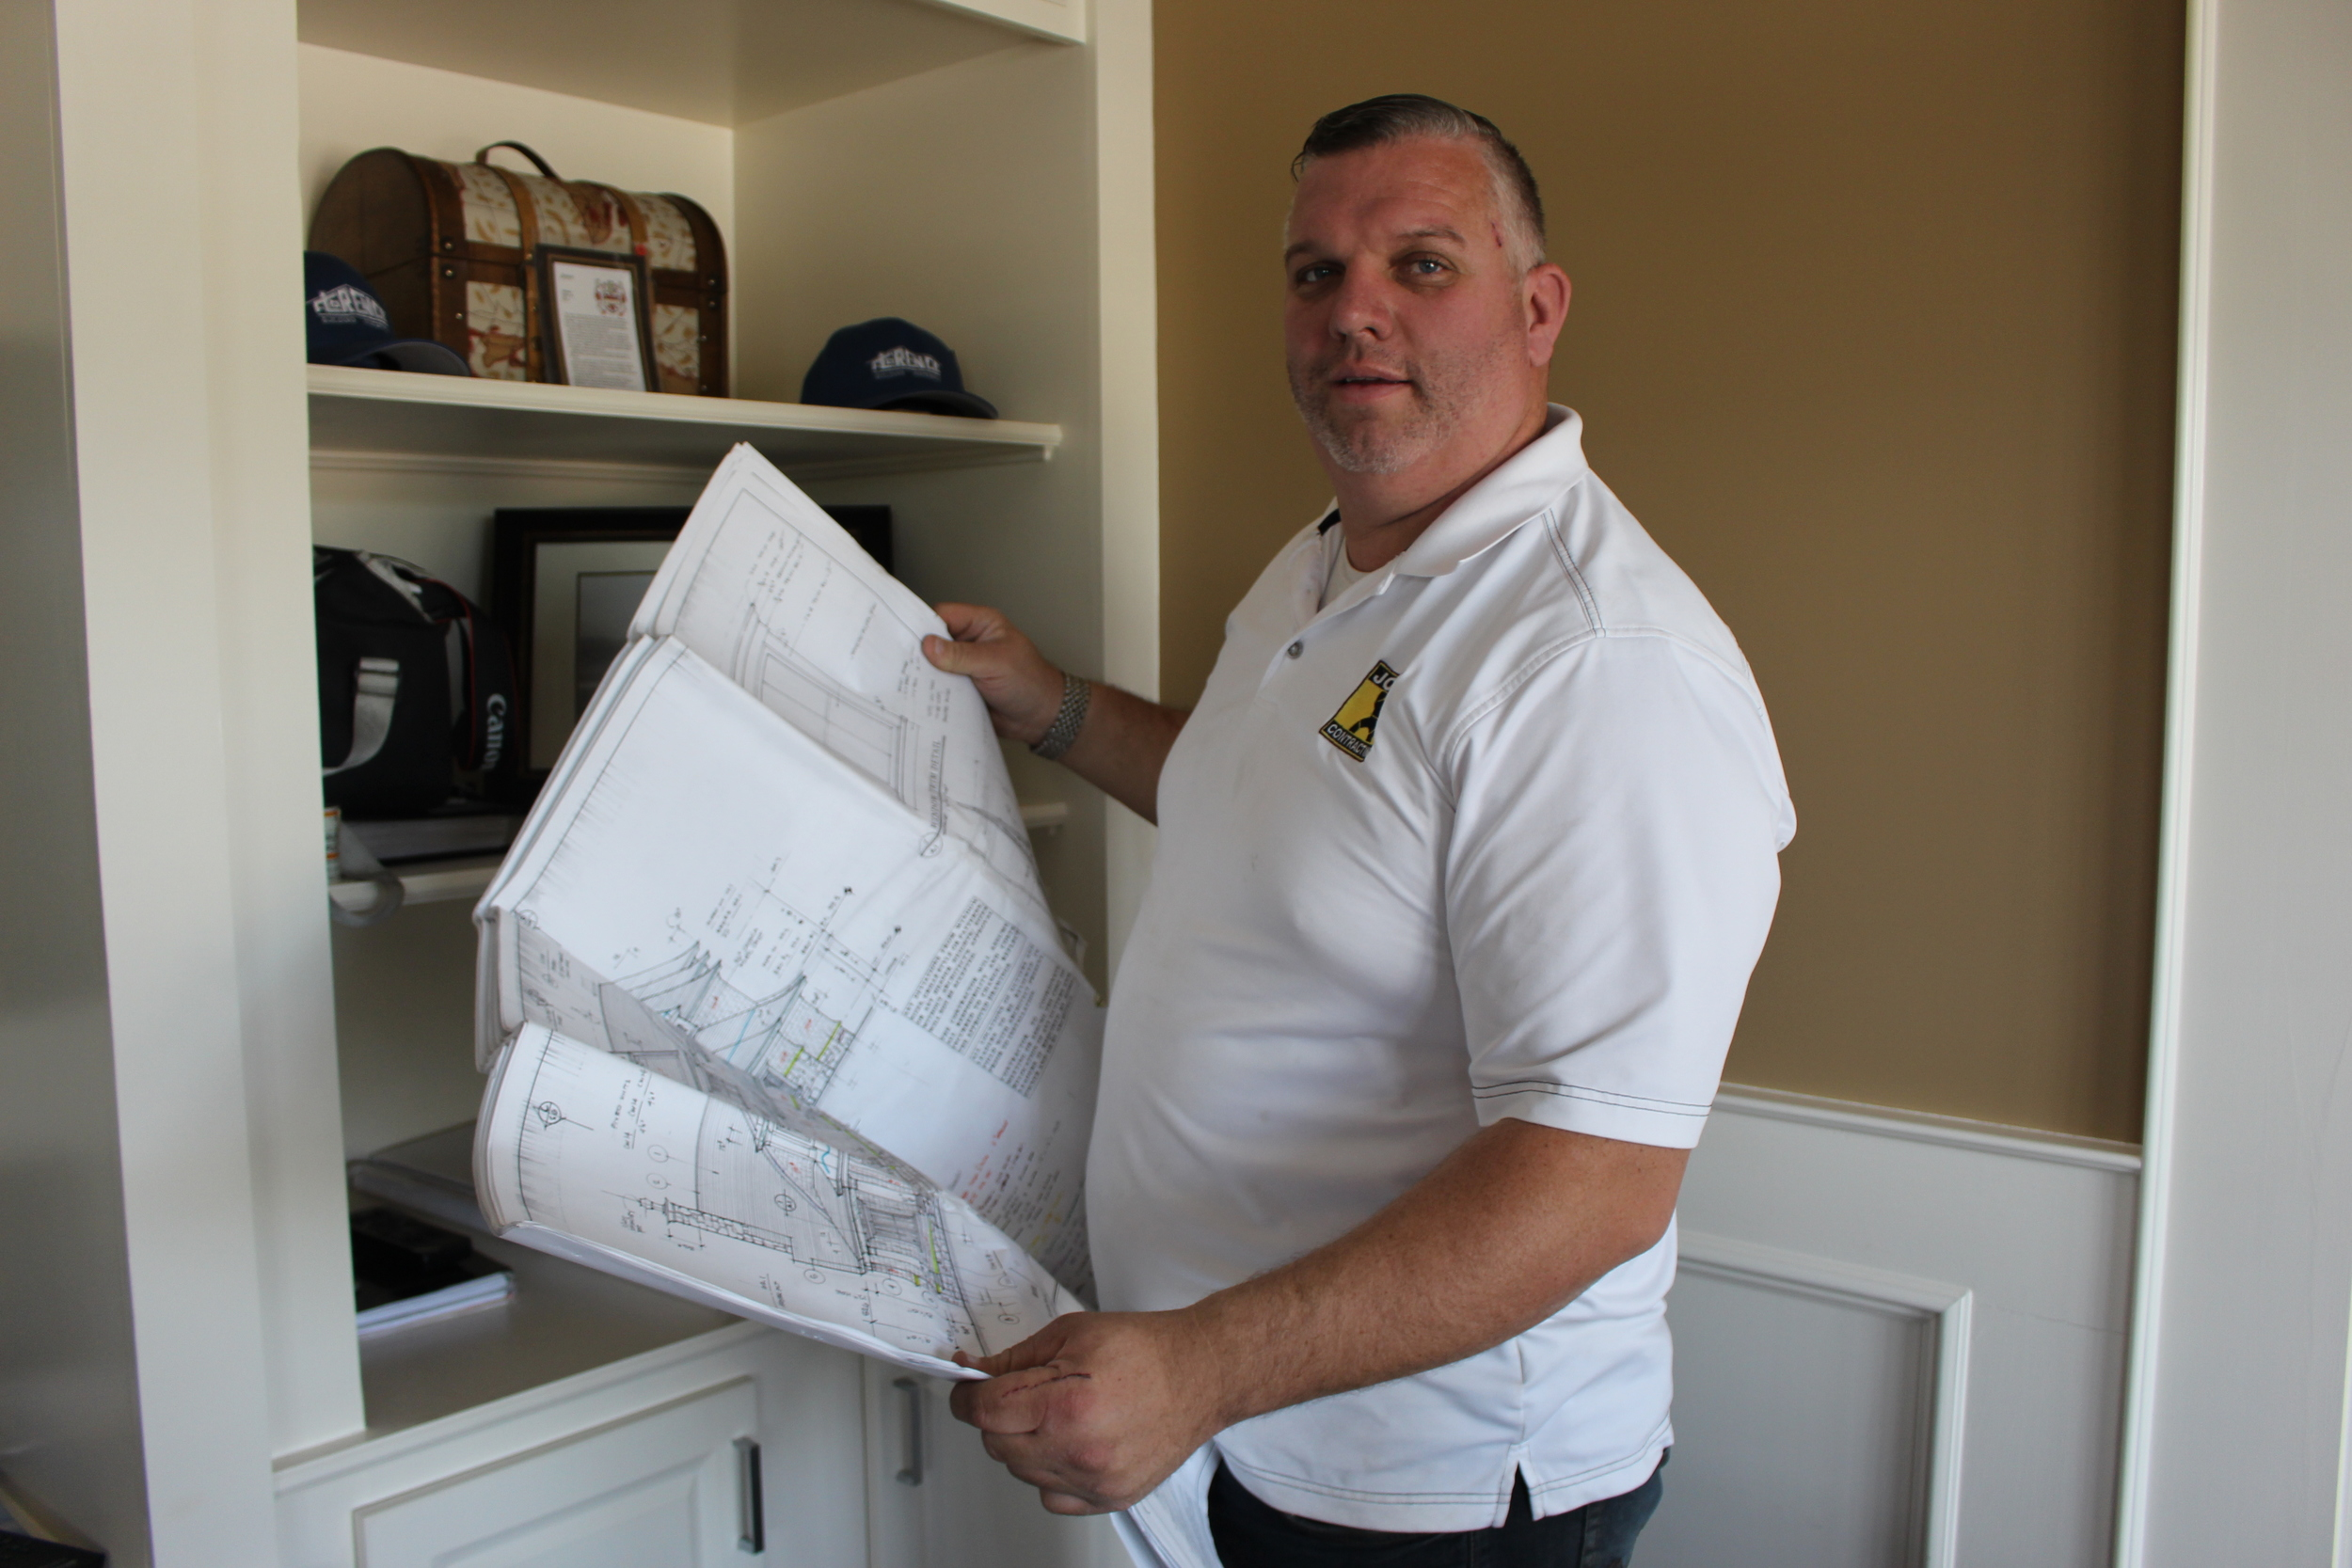 John Joyce, owner of John J. Contracting in Huntington Station, has never seen his love for the craft fade, continuing to stay heavily involved in his business 20 years later.